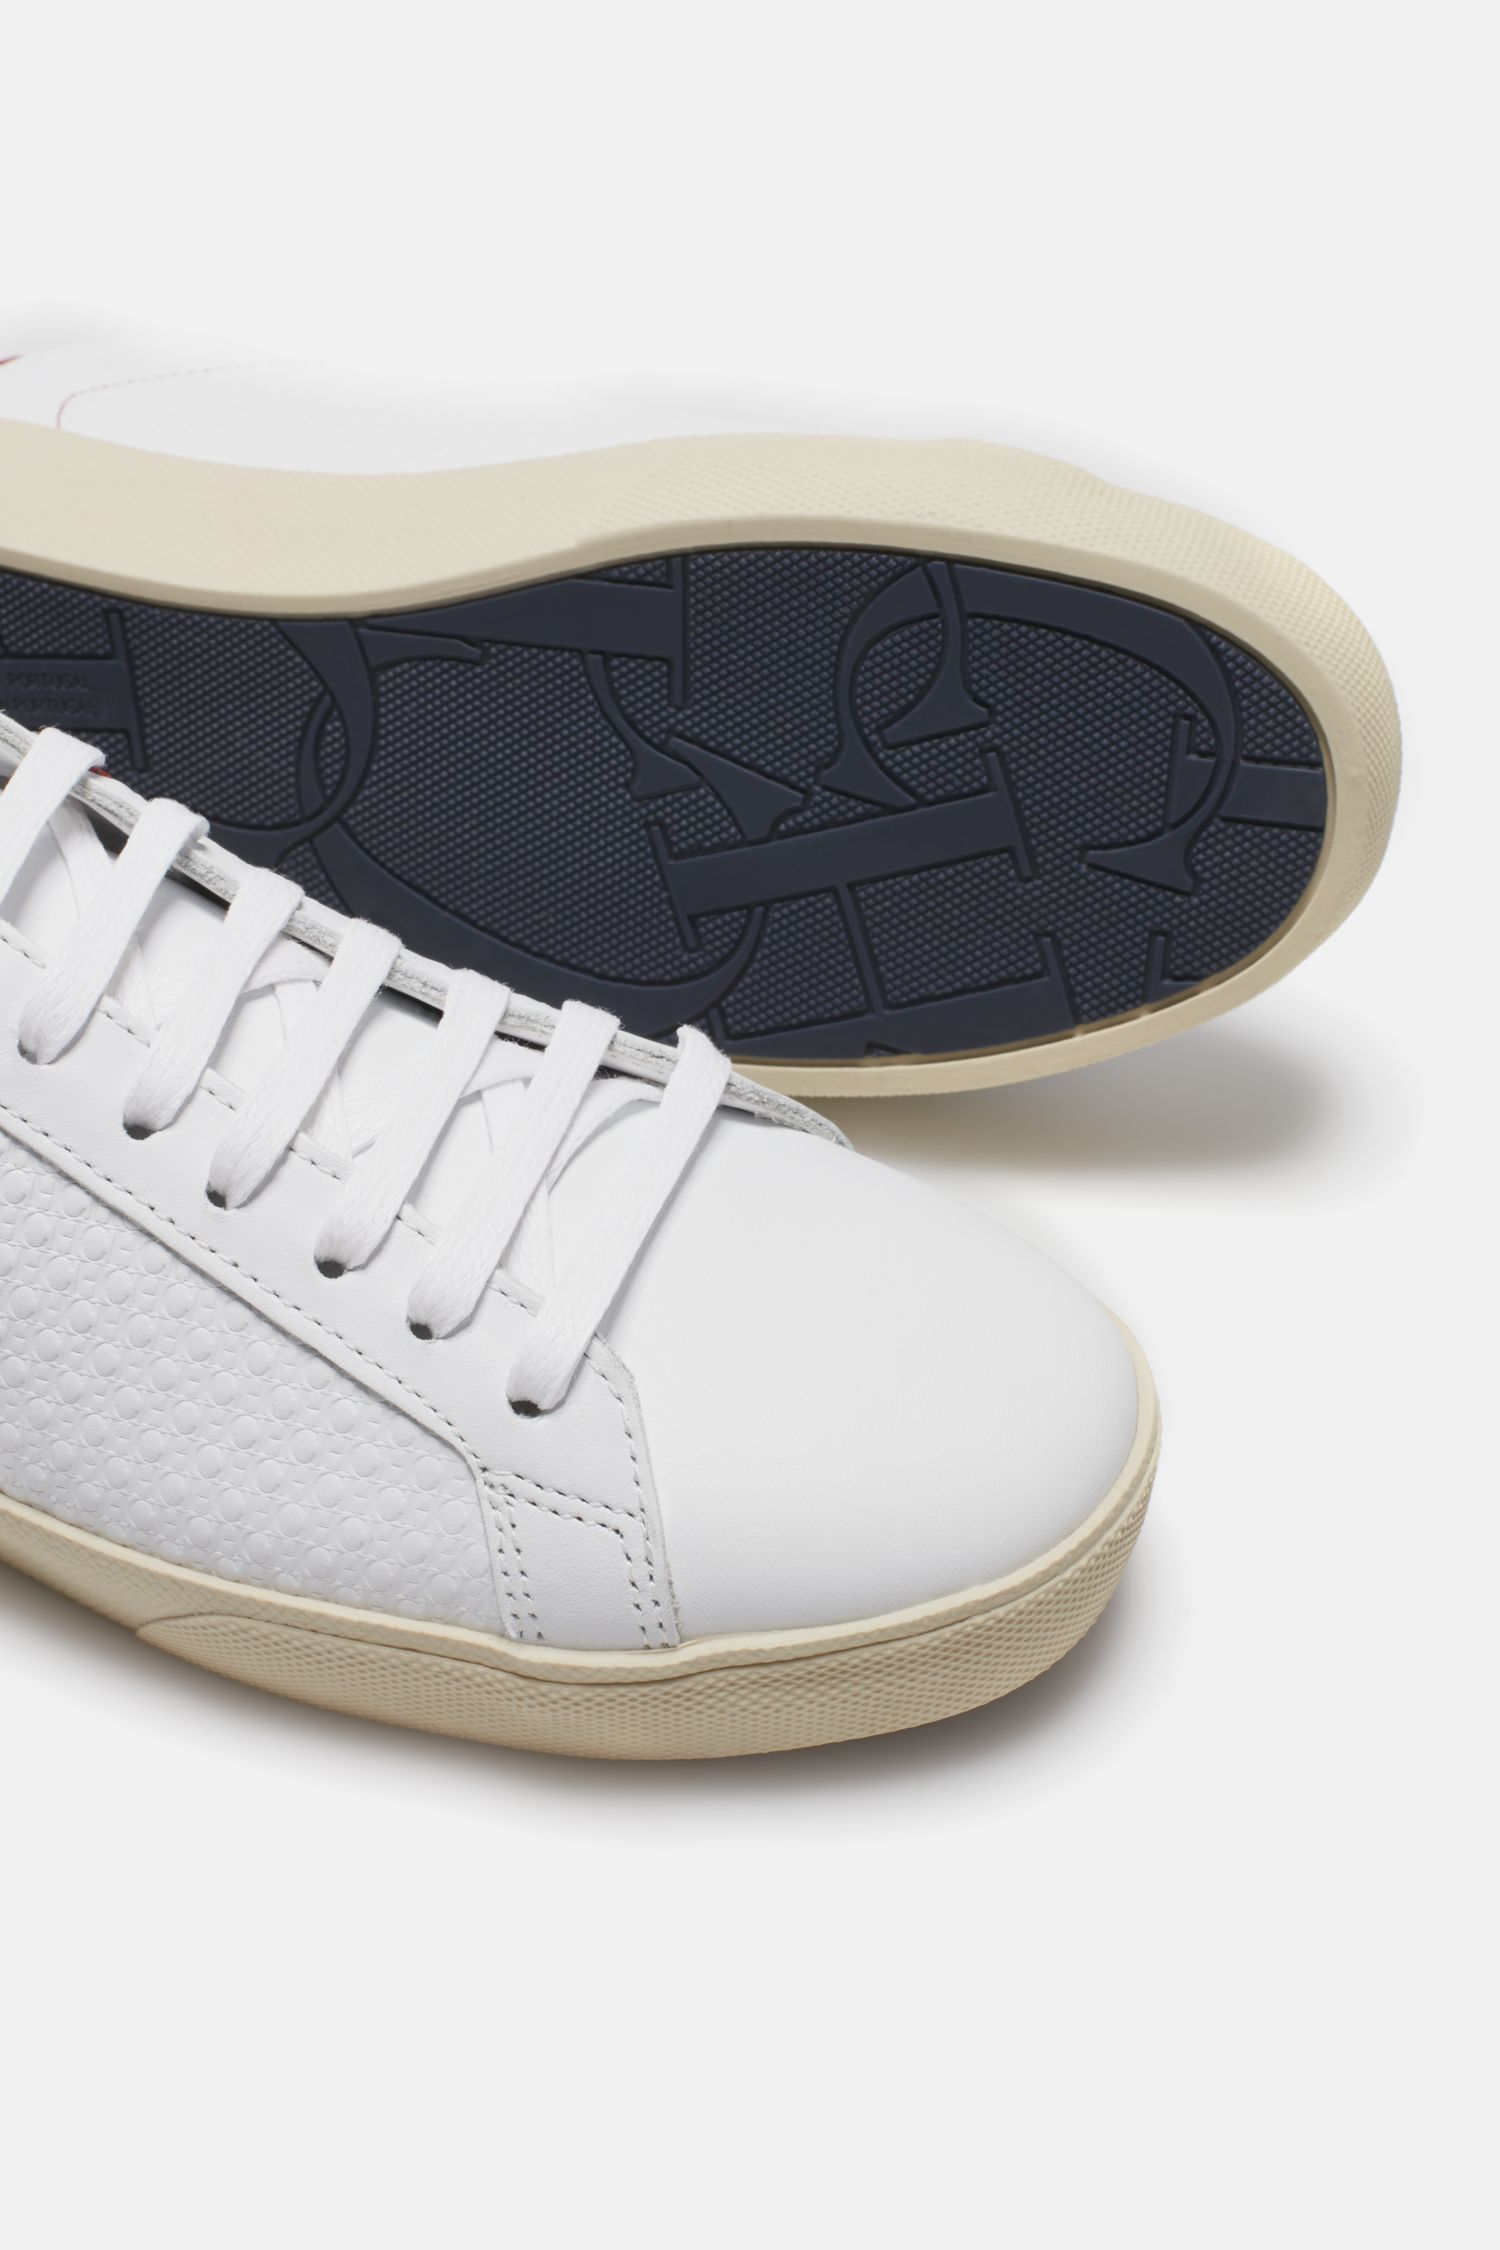 CH-embossed leather sneakers